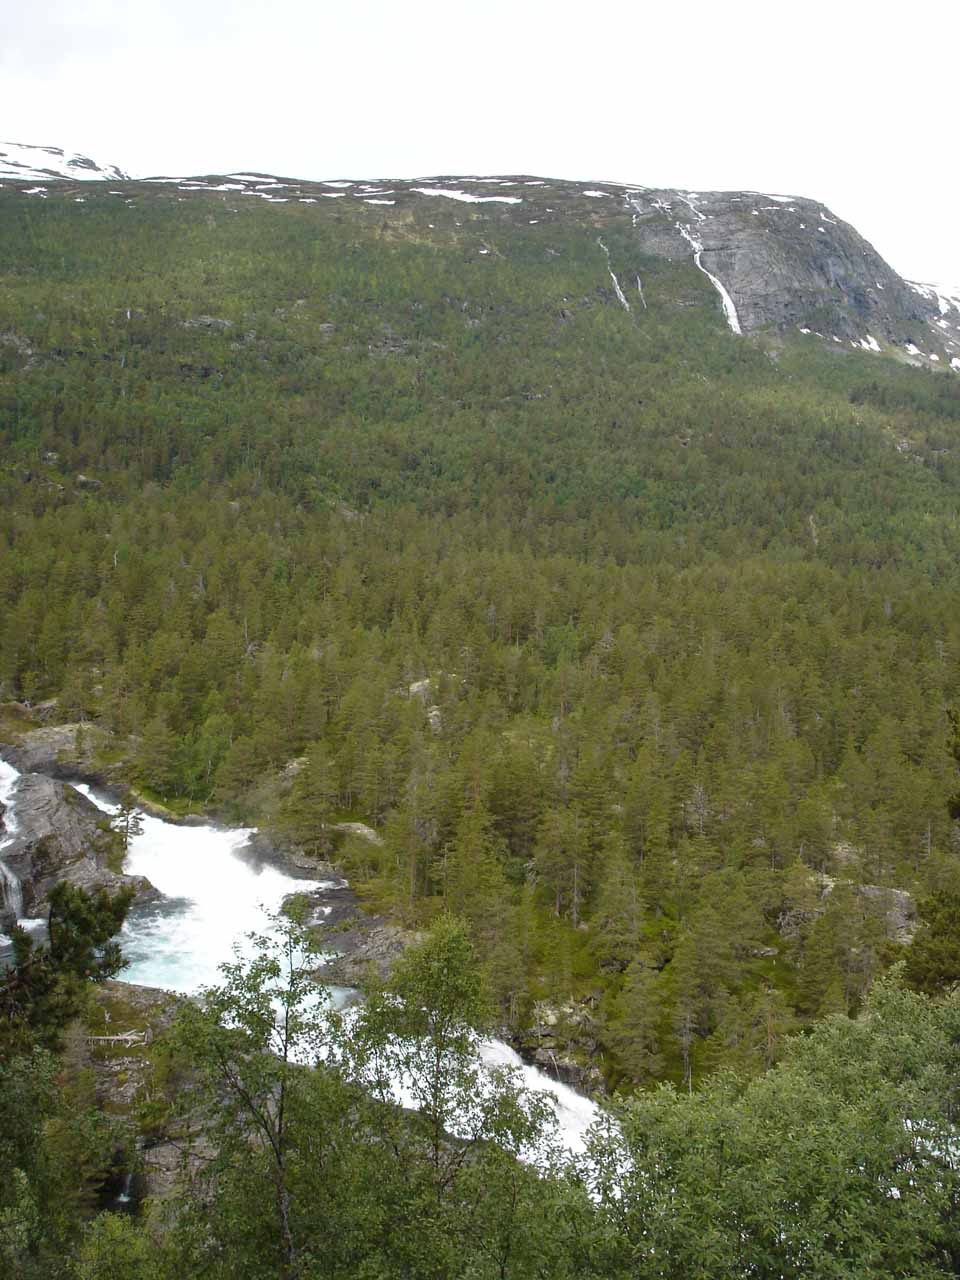 When we backtracked on the E136 now headed southeast, we then found the next pullout where we got this view of Svaåafossen in the distance shortly before scrambling to find a better view of Kleivafossen